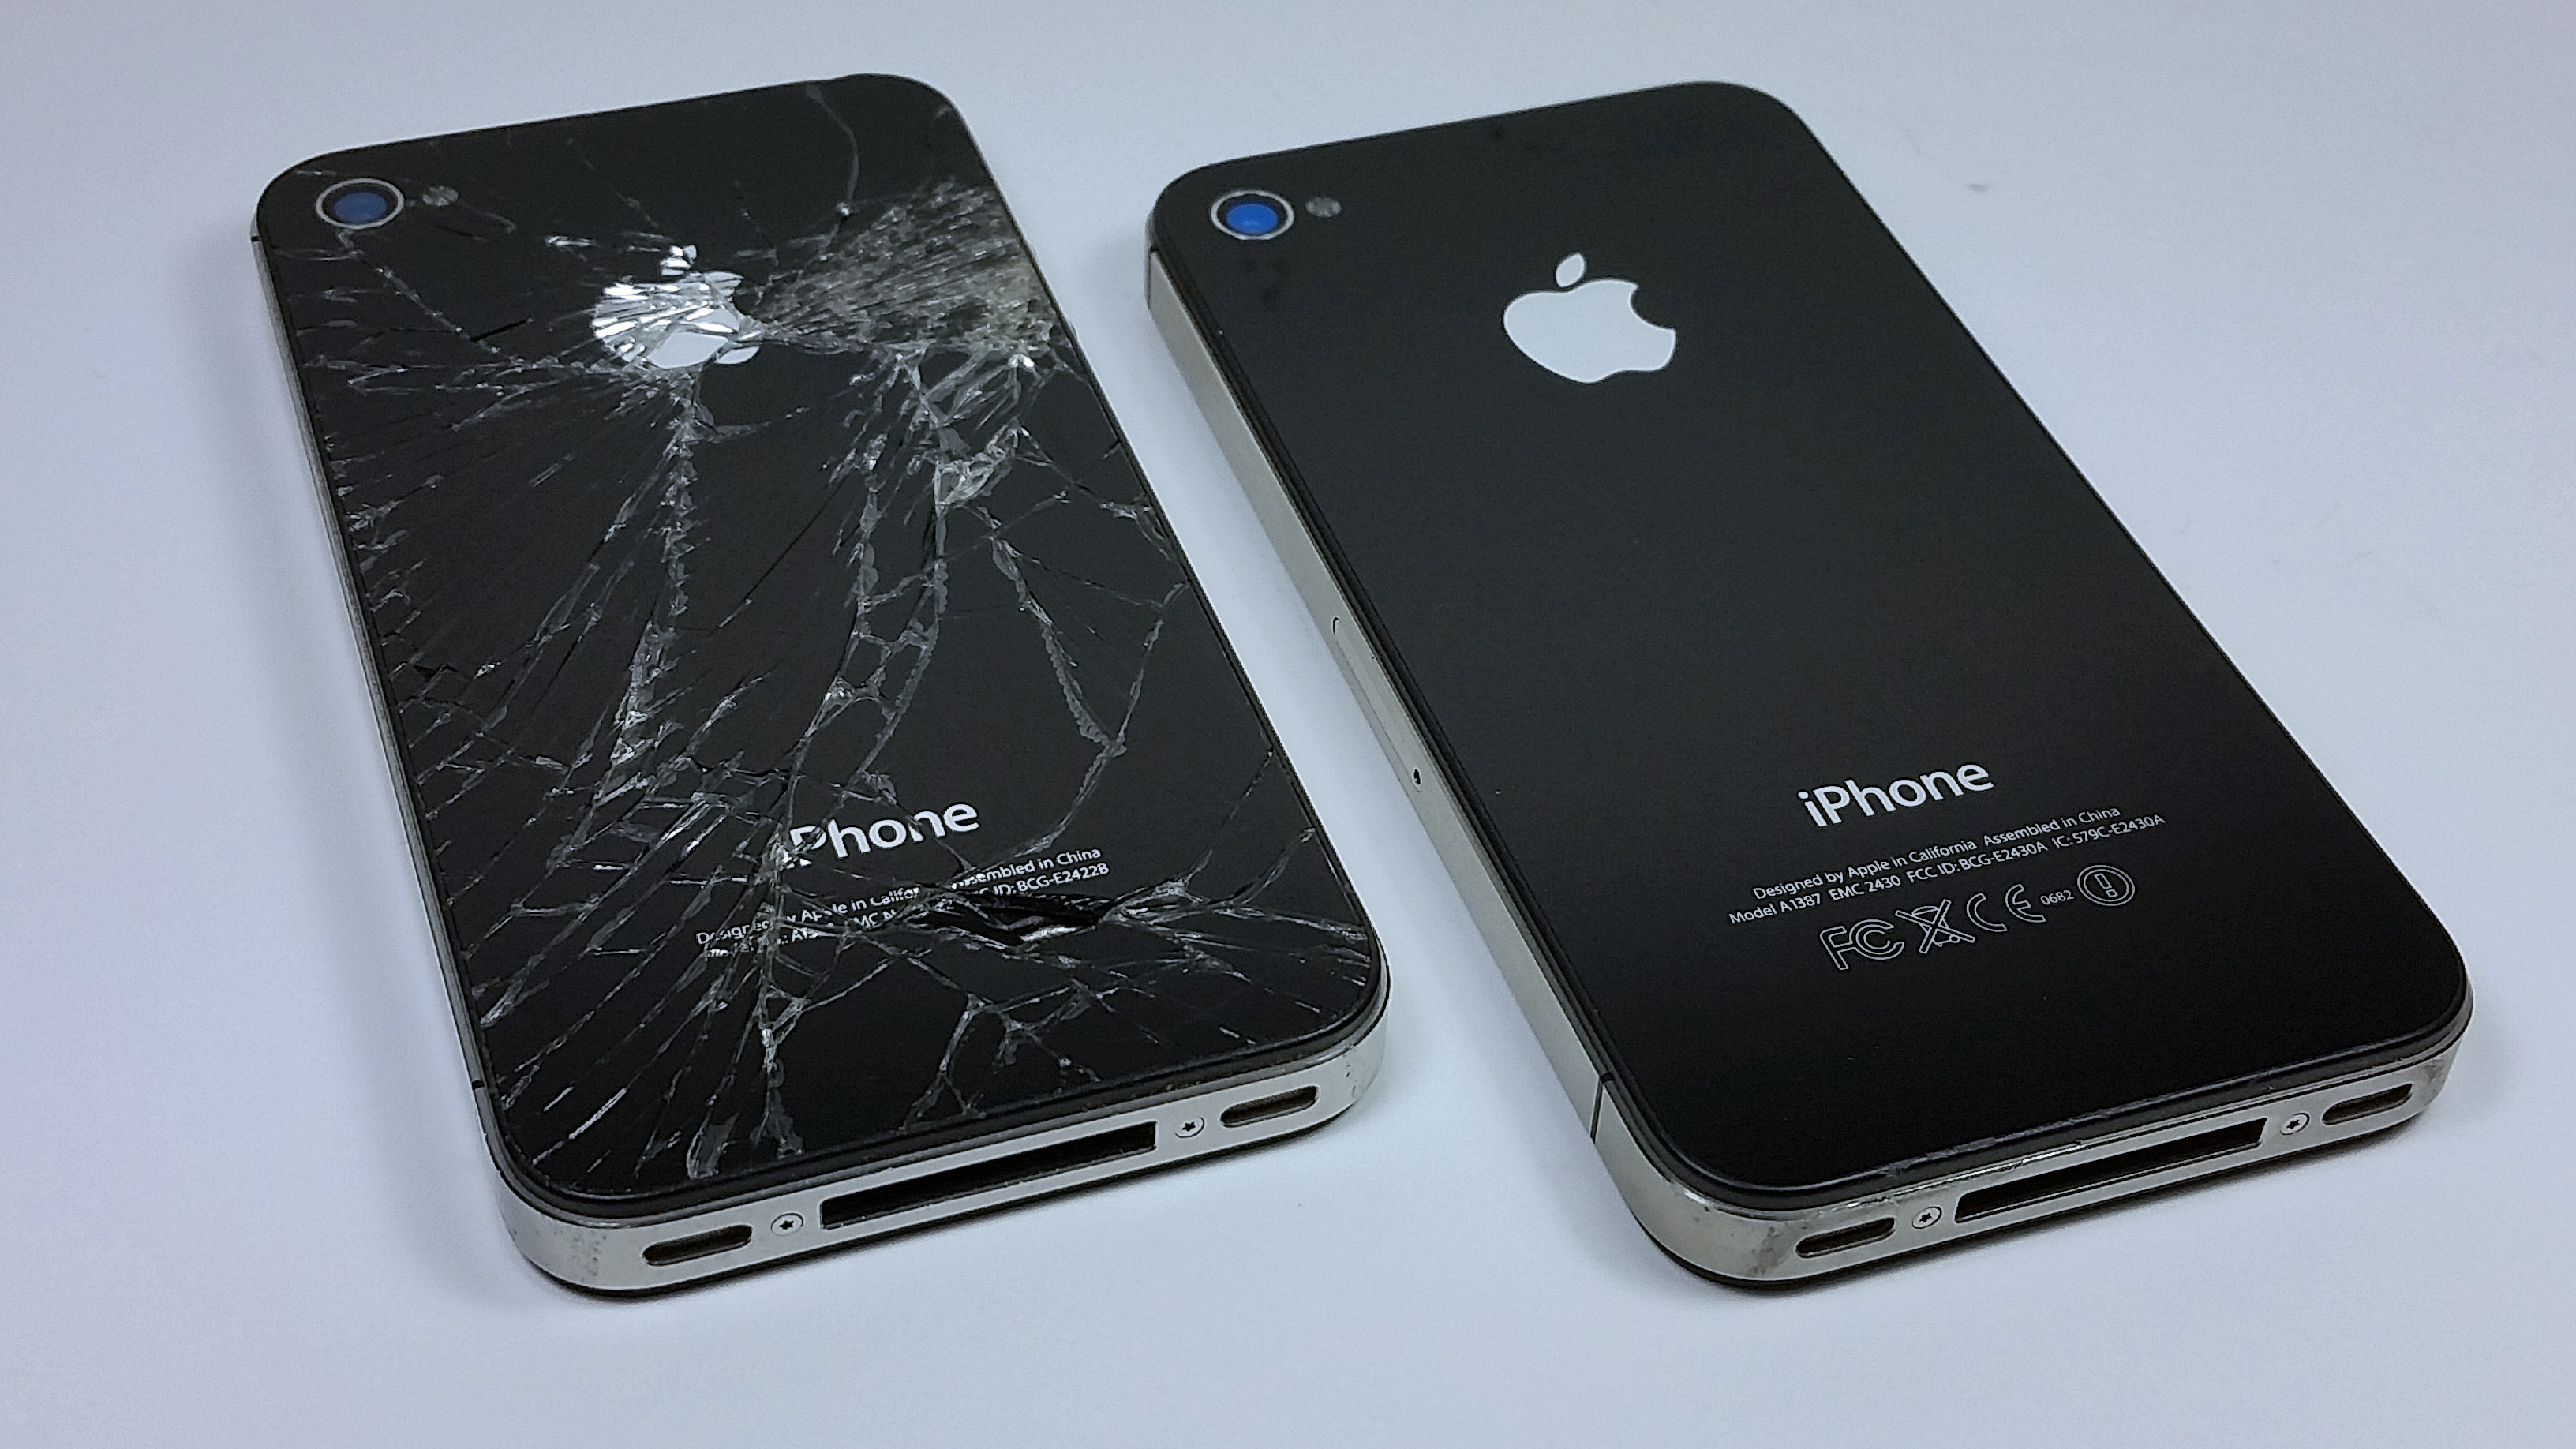 Broken Glass back phone